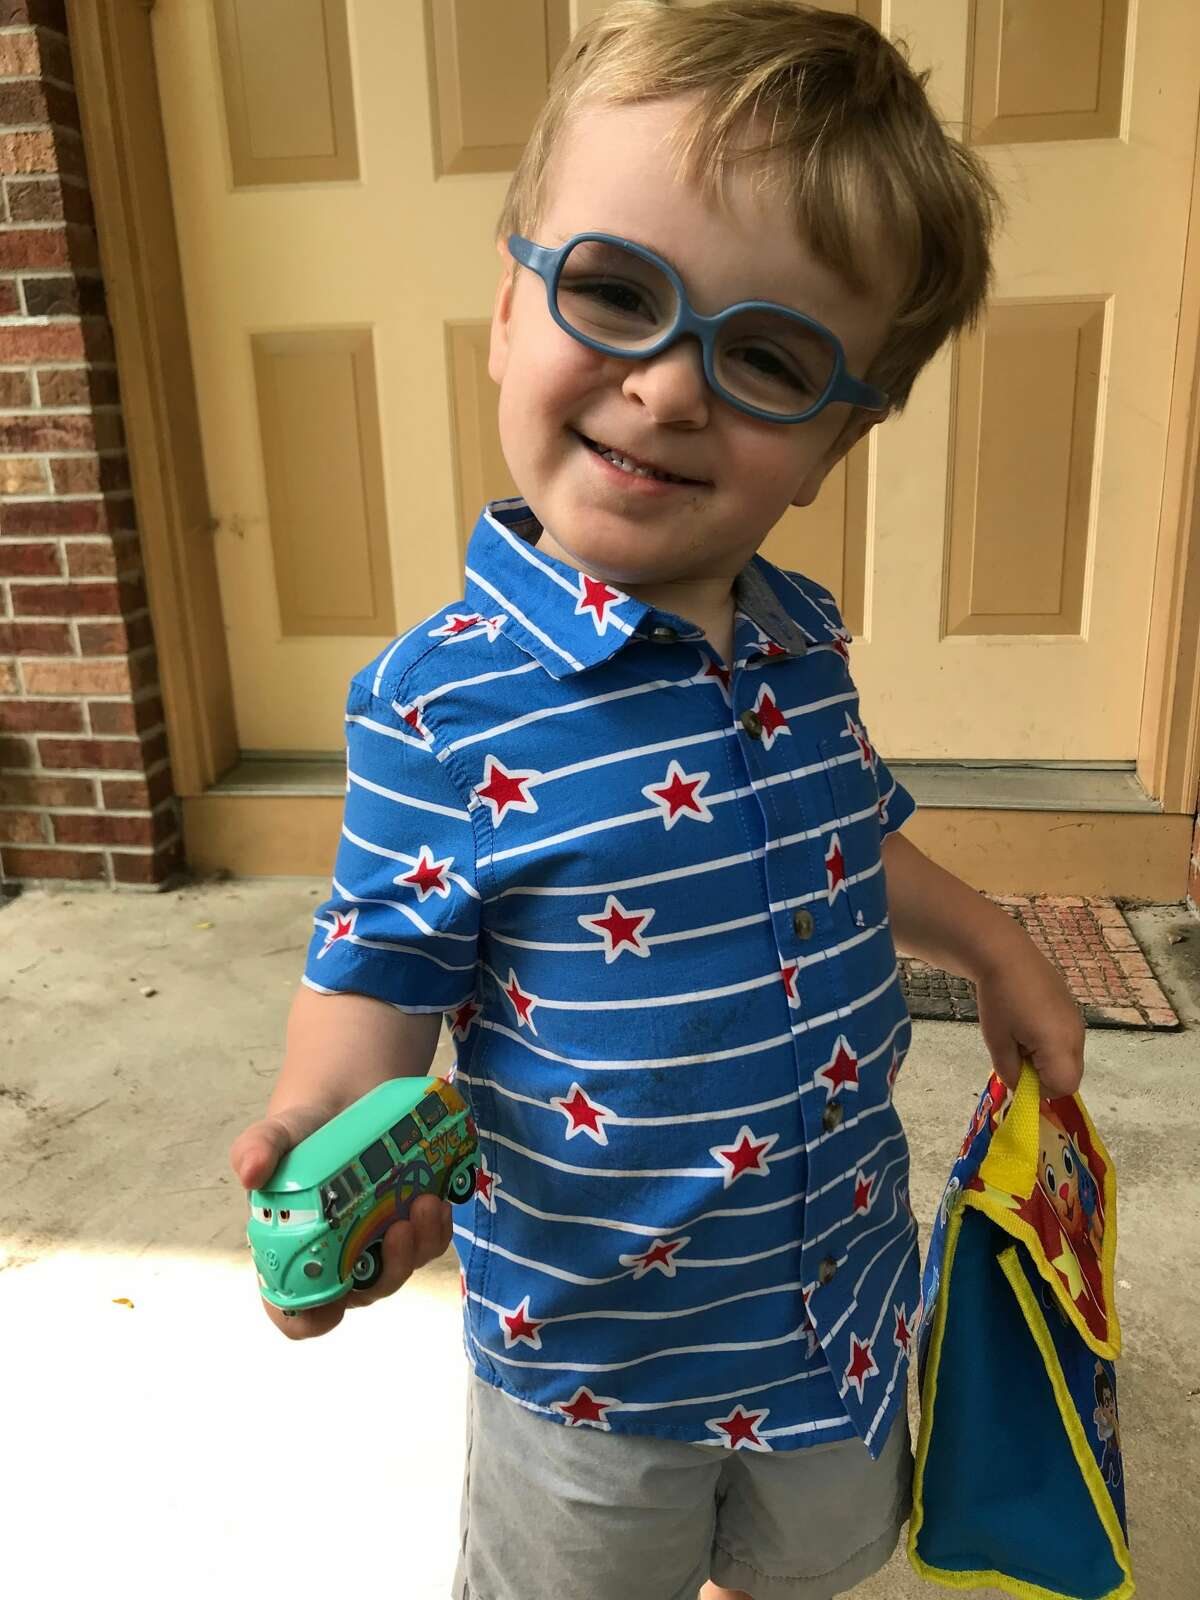 1. Harrison, my adorable two-and-a-half-year-old son, wears prescription glasses.